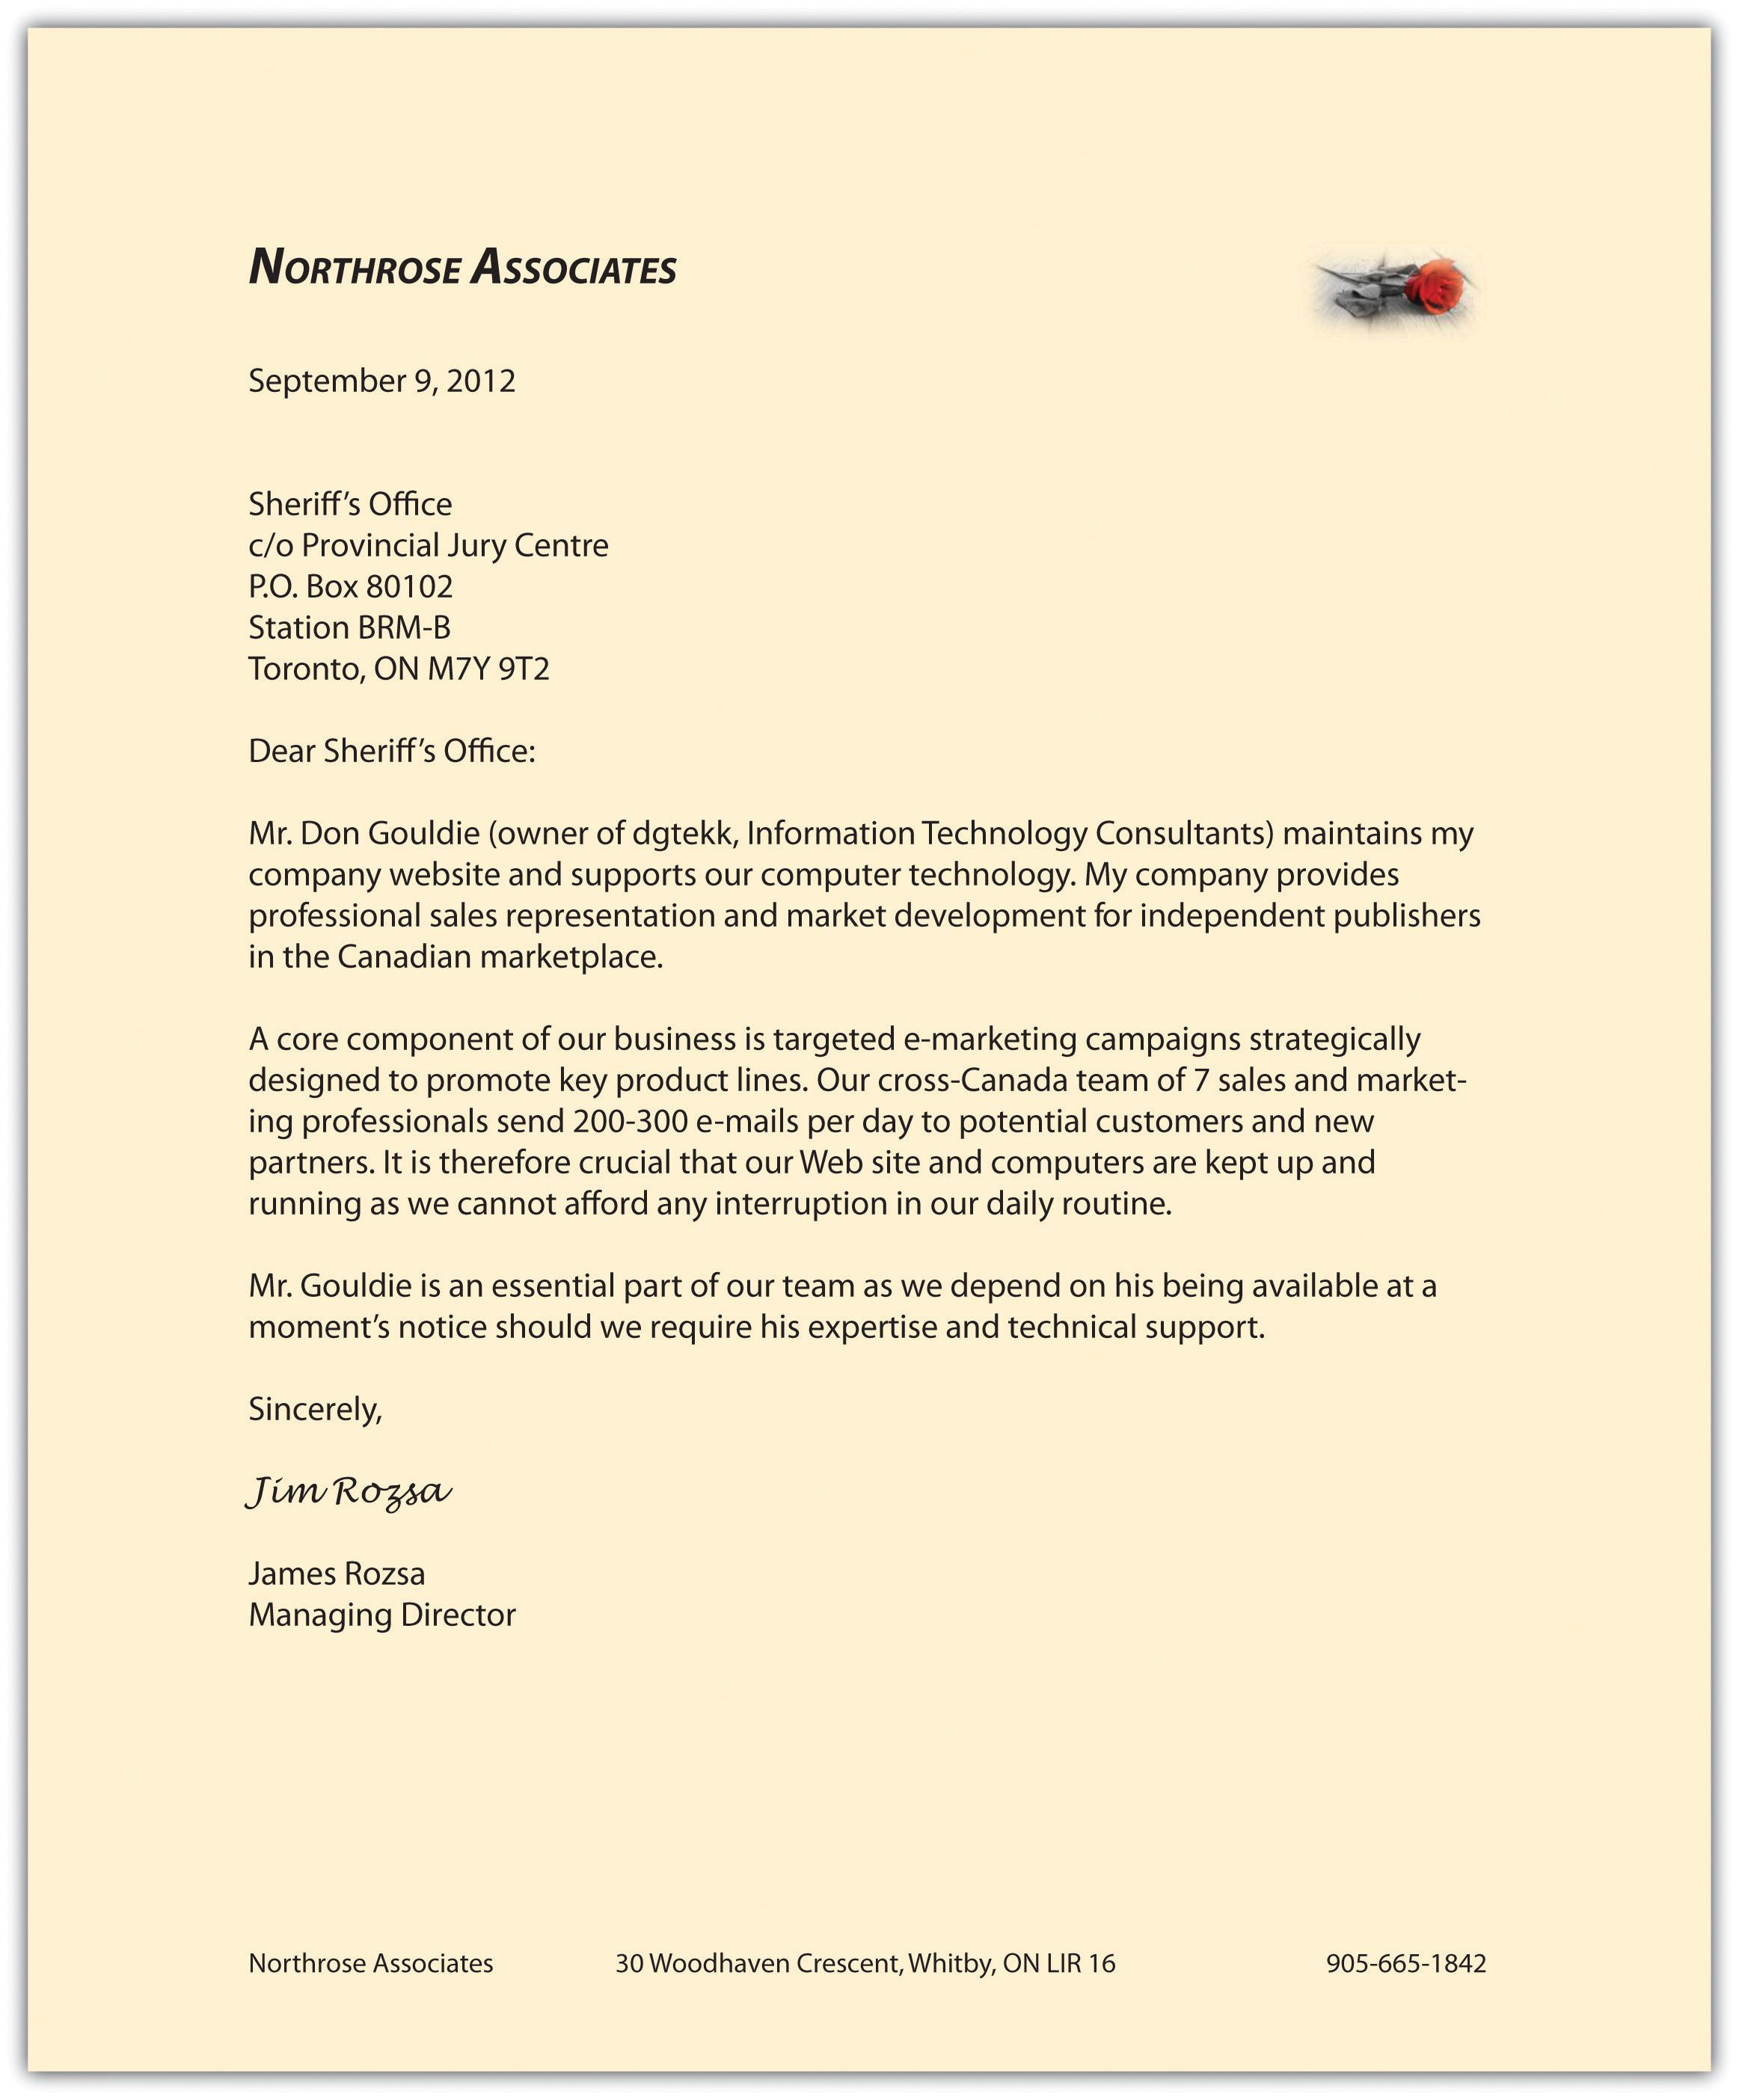 Formal Business Report Sample Business Communication For Success Canadian Edition Flatworld Letter .